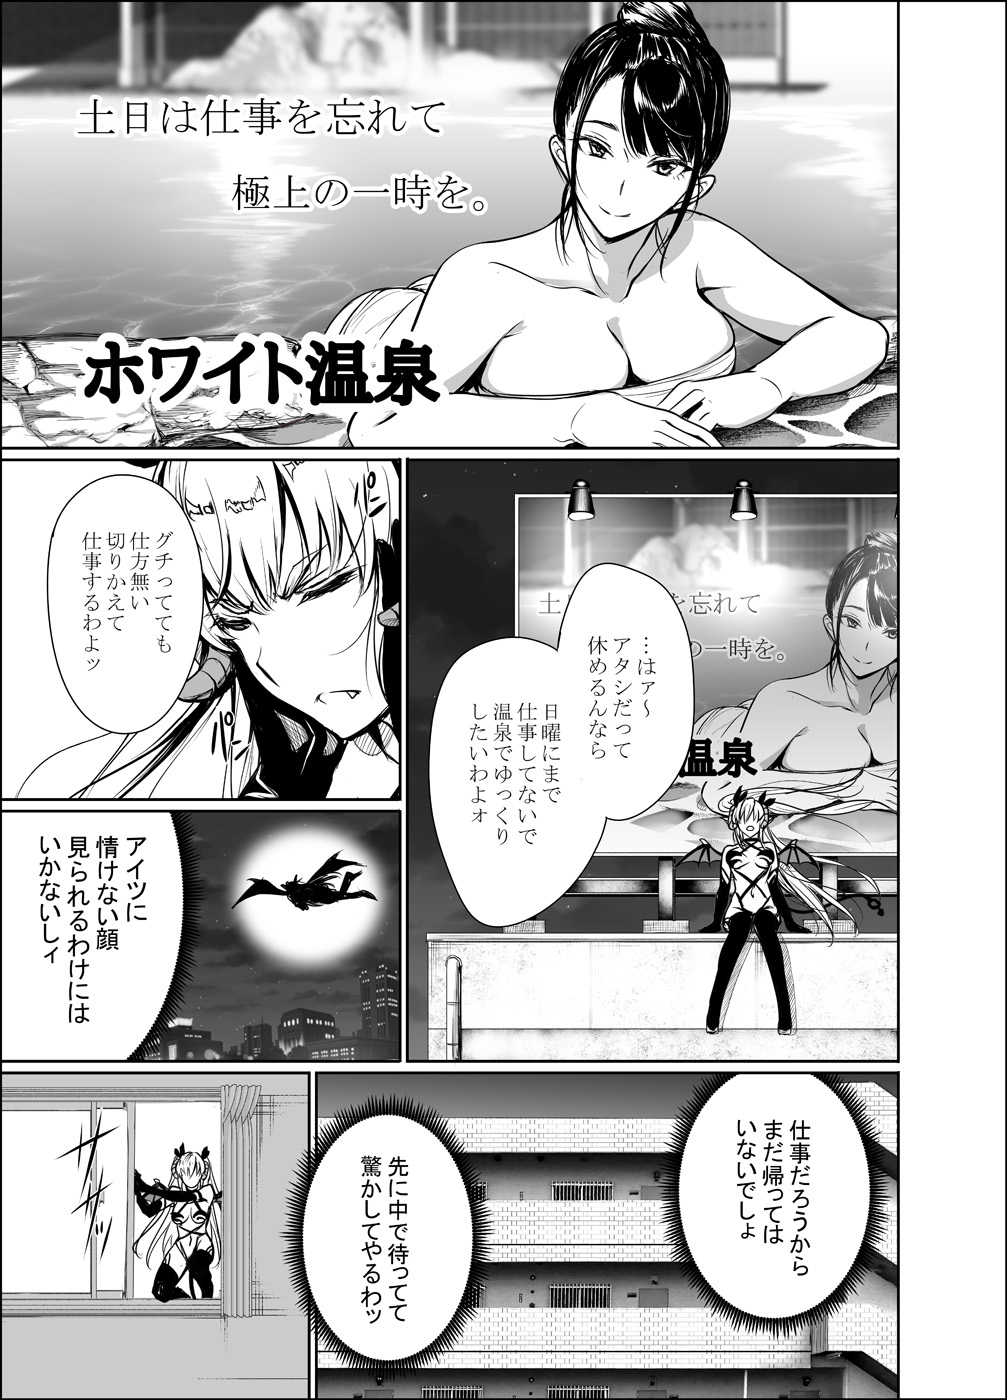 1girl 2girls billboard boots climbing comic commentary curtains demon_girl demon_horns demon_tail demon_wings eyebrows_visible_through_hair flying full_moon gentsuki greyscale hair_bun highres horns lily_(gentsuki) monochrome moon multiple_girls naked_towel onsen opening_window original pointy_ears revealing_clothes solo speech_bubble succubus tail thick_eyebrows thigh-highs thigh_boots towel two_side_up window wings